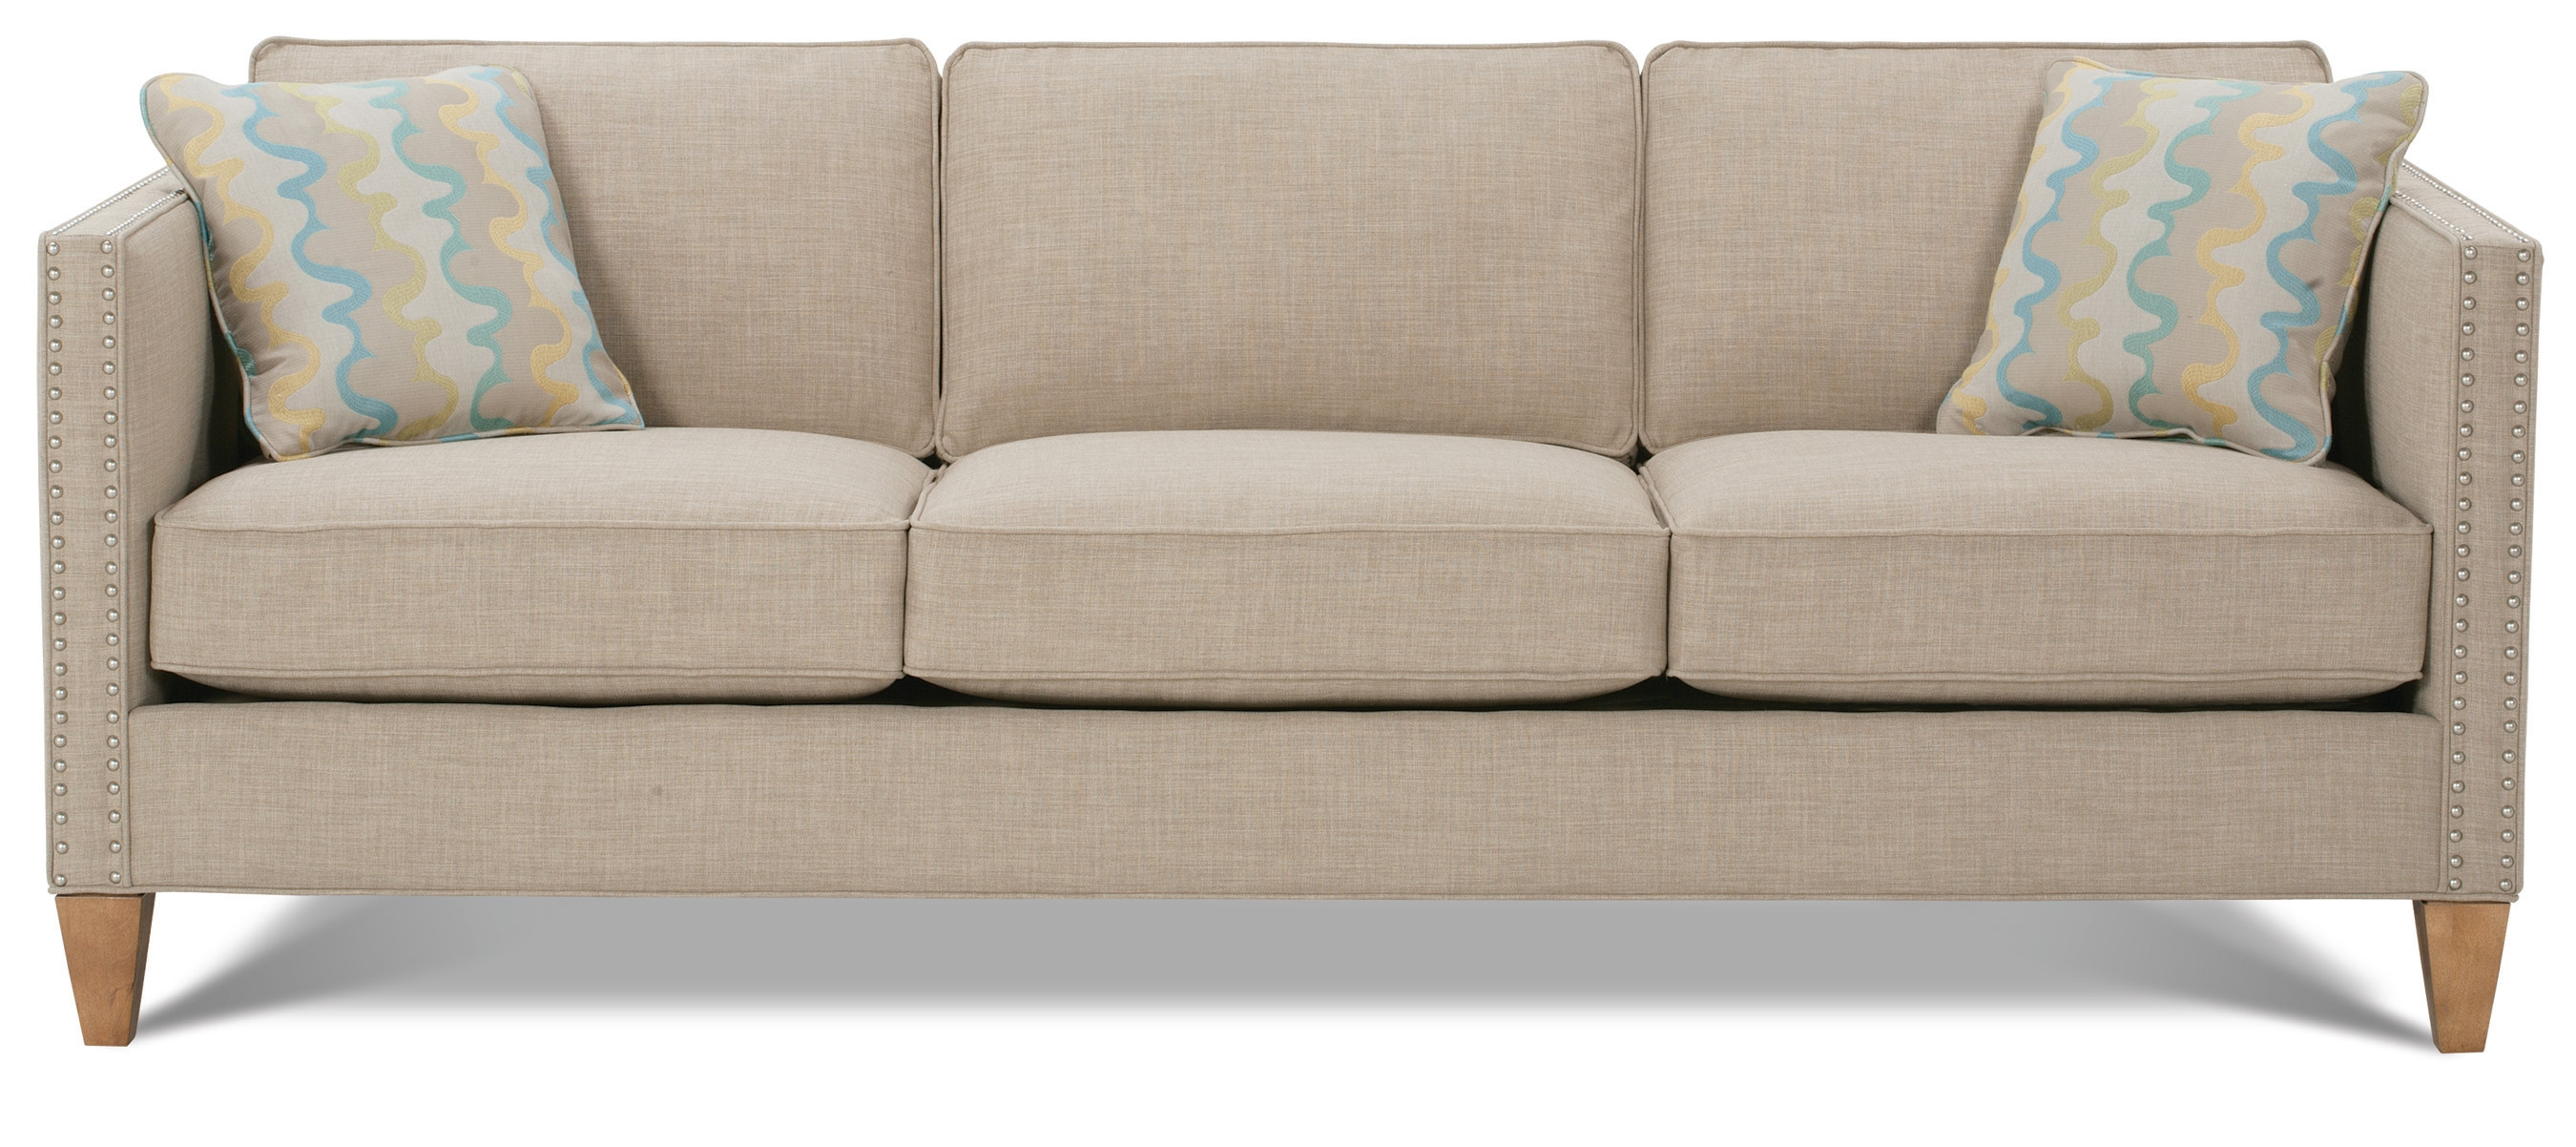 60 Three Seater Sofa Seater Sofa Custom Made Sofa Avworld Regarding Three Seater Sofas (Image 4 of 15)